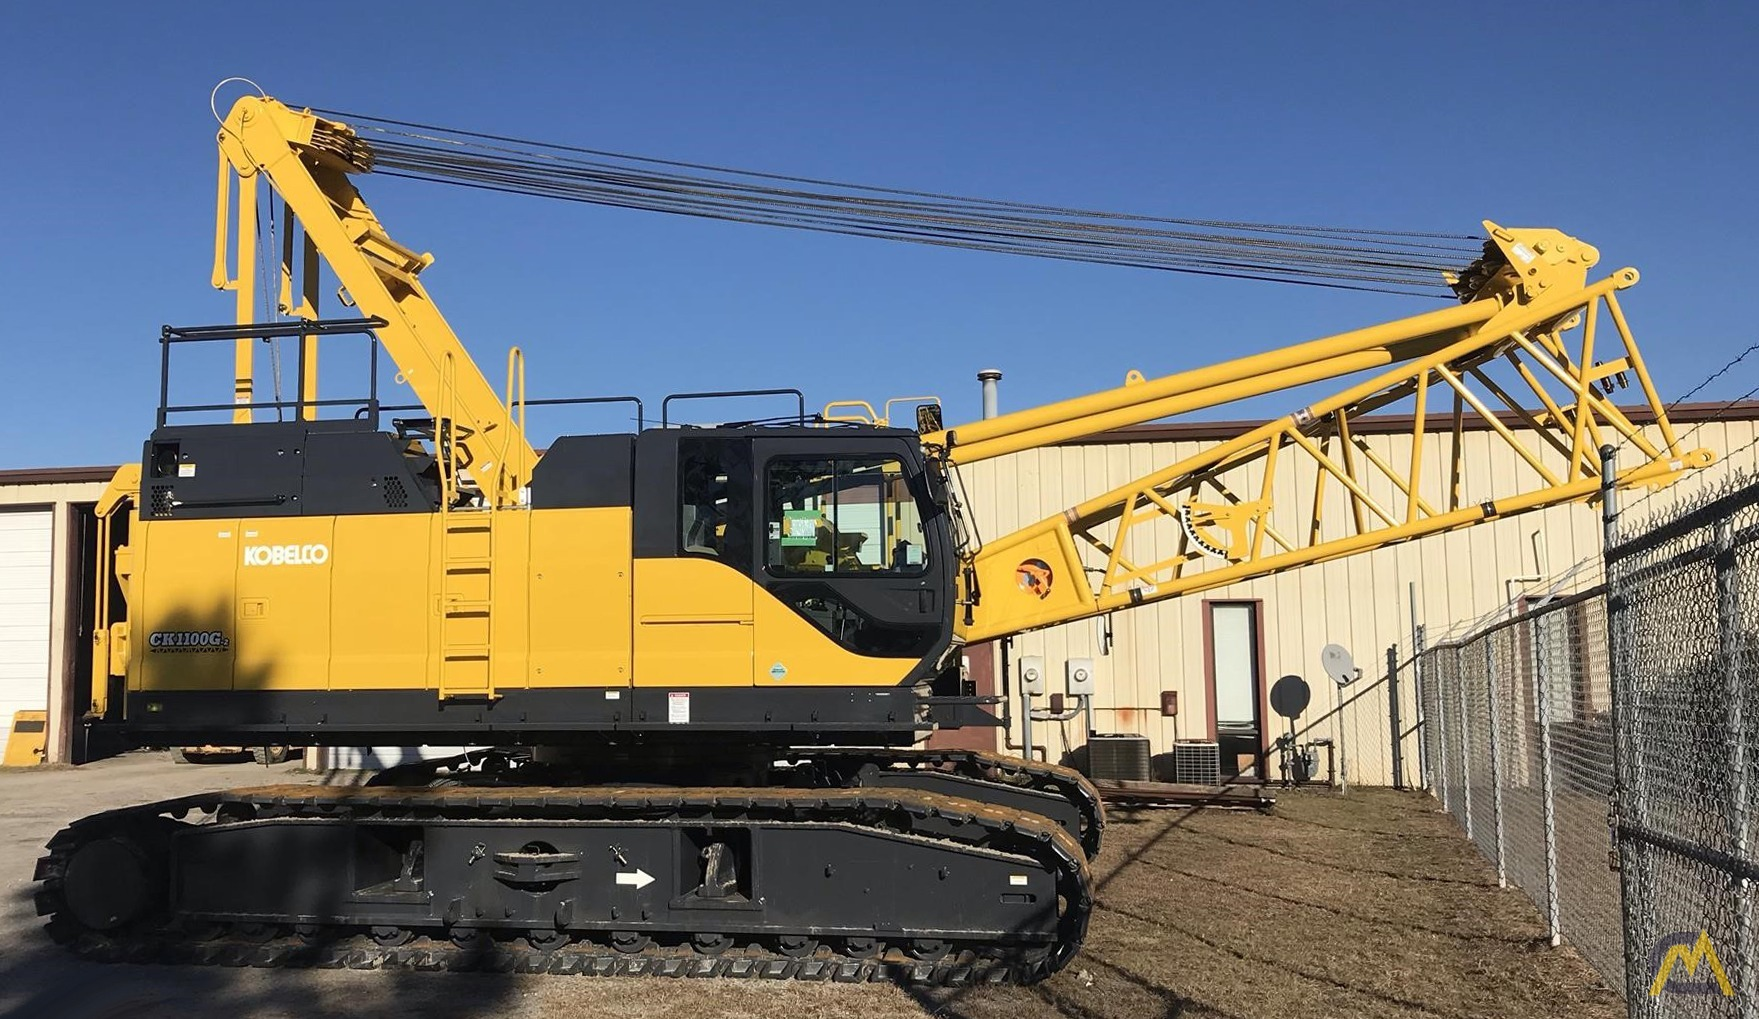 Kobelco CK1100G 110-Ton Lattice Boom Crawler Crane  0